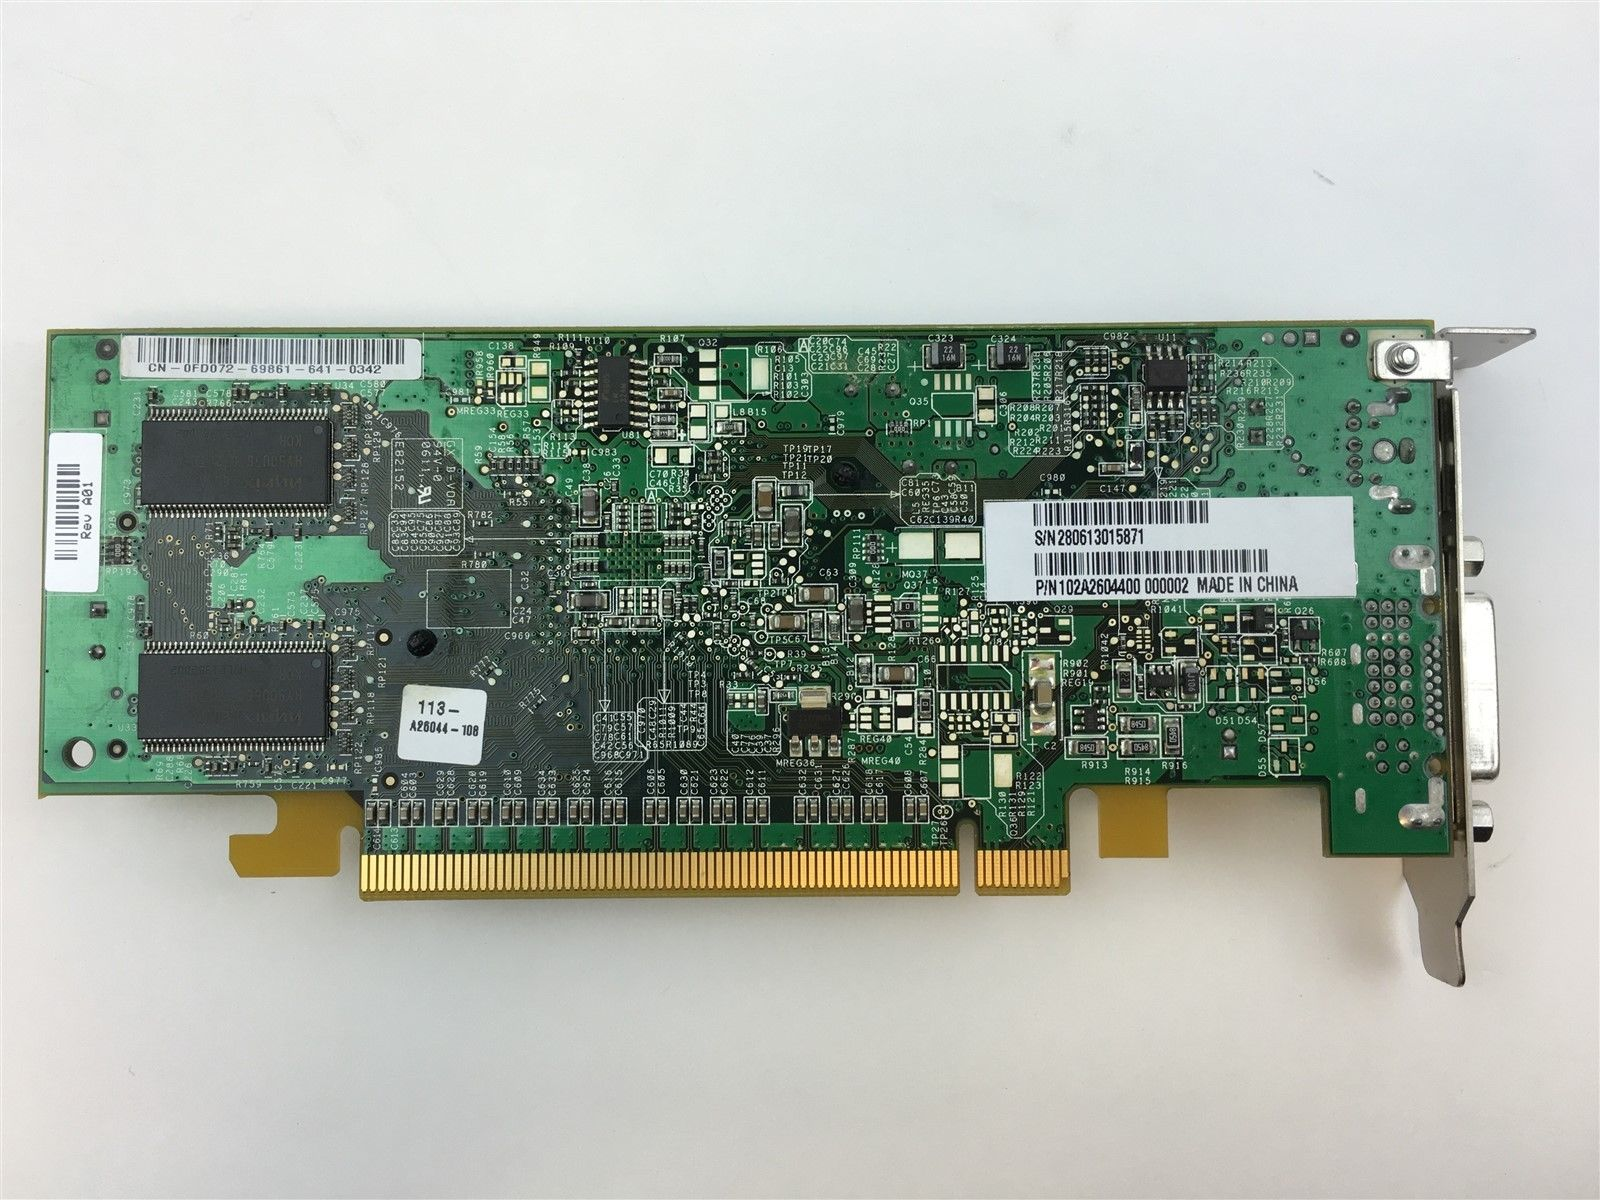 Genuine Dell ATI Radeon X600 PCIe Express DVI HH 128MB Video Card FD072 0FD072